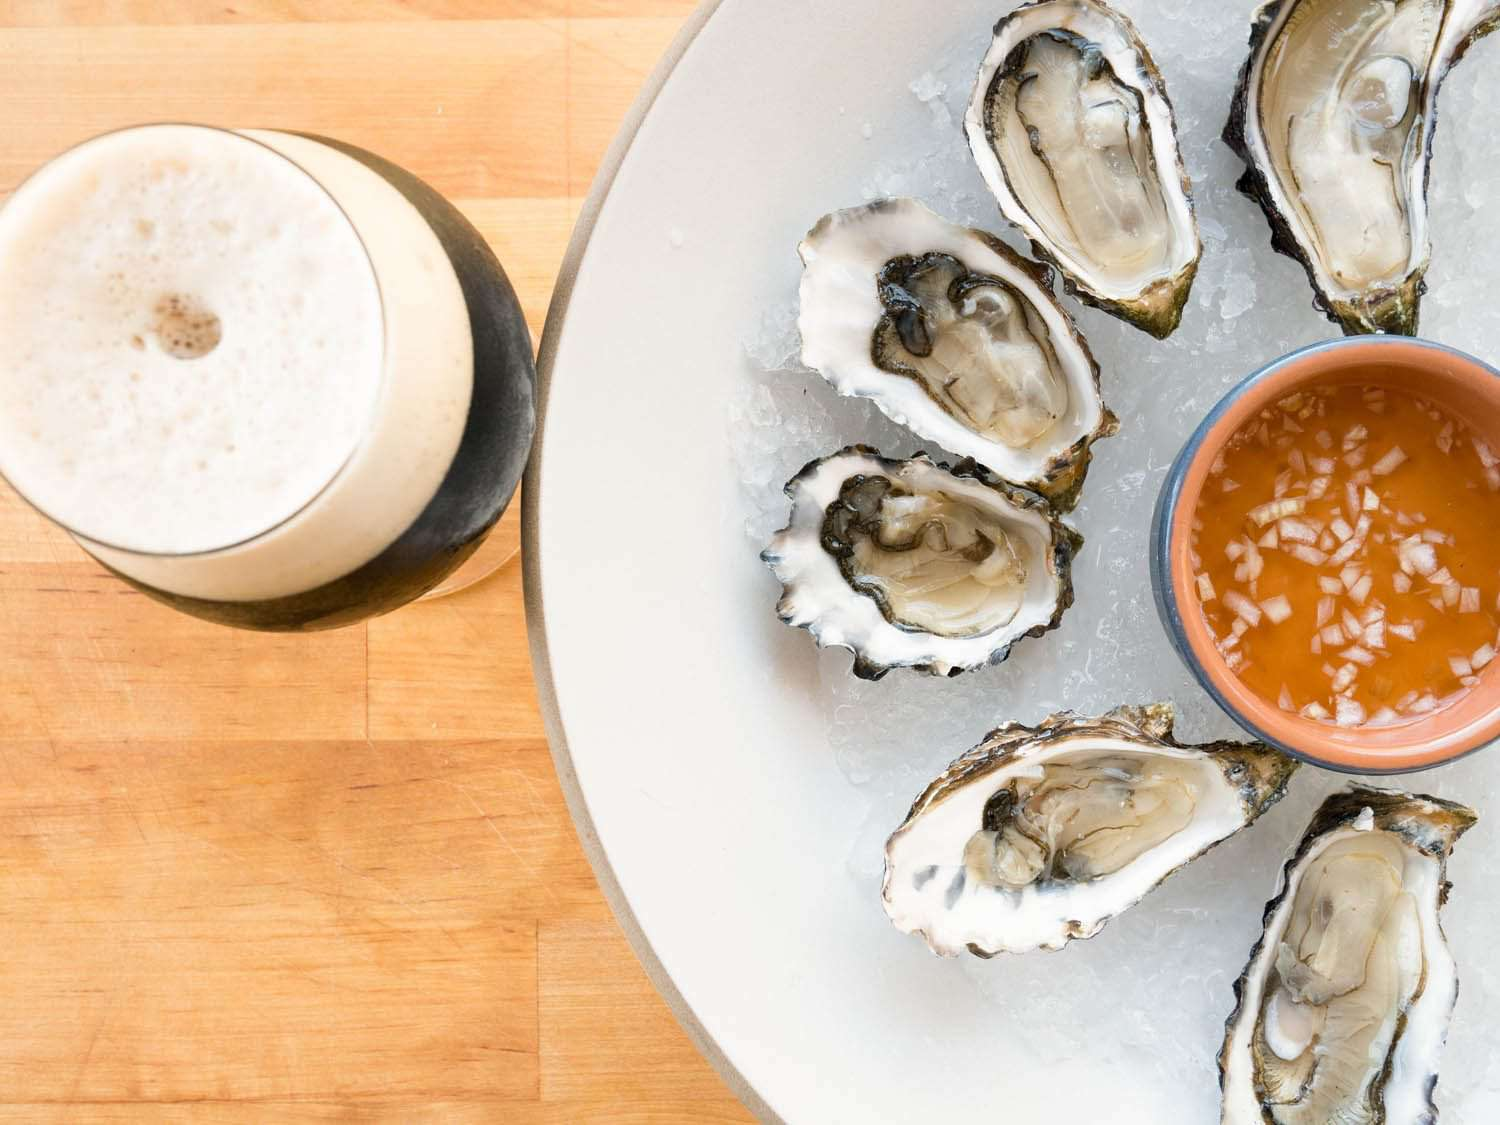 Raw oysters on the half shell with mignonette, served with a beer.